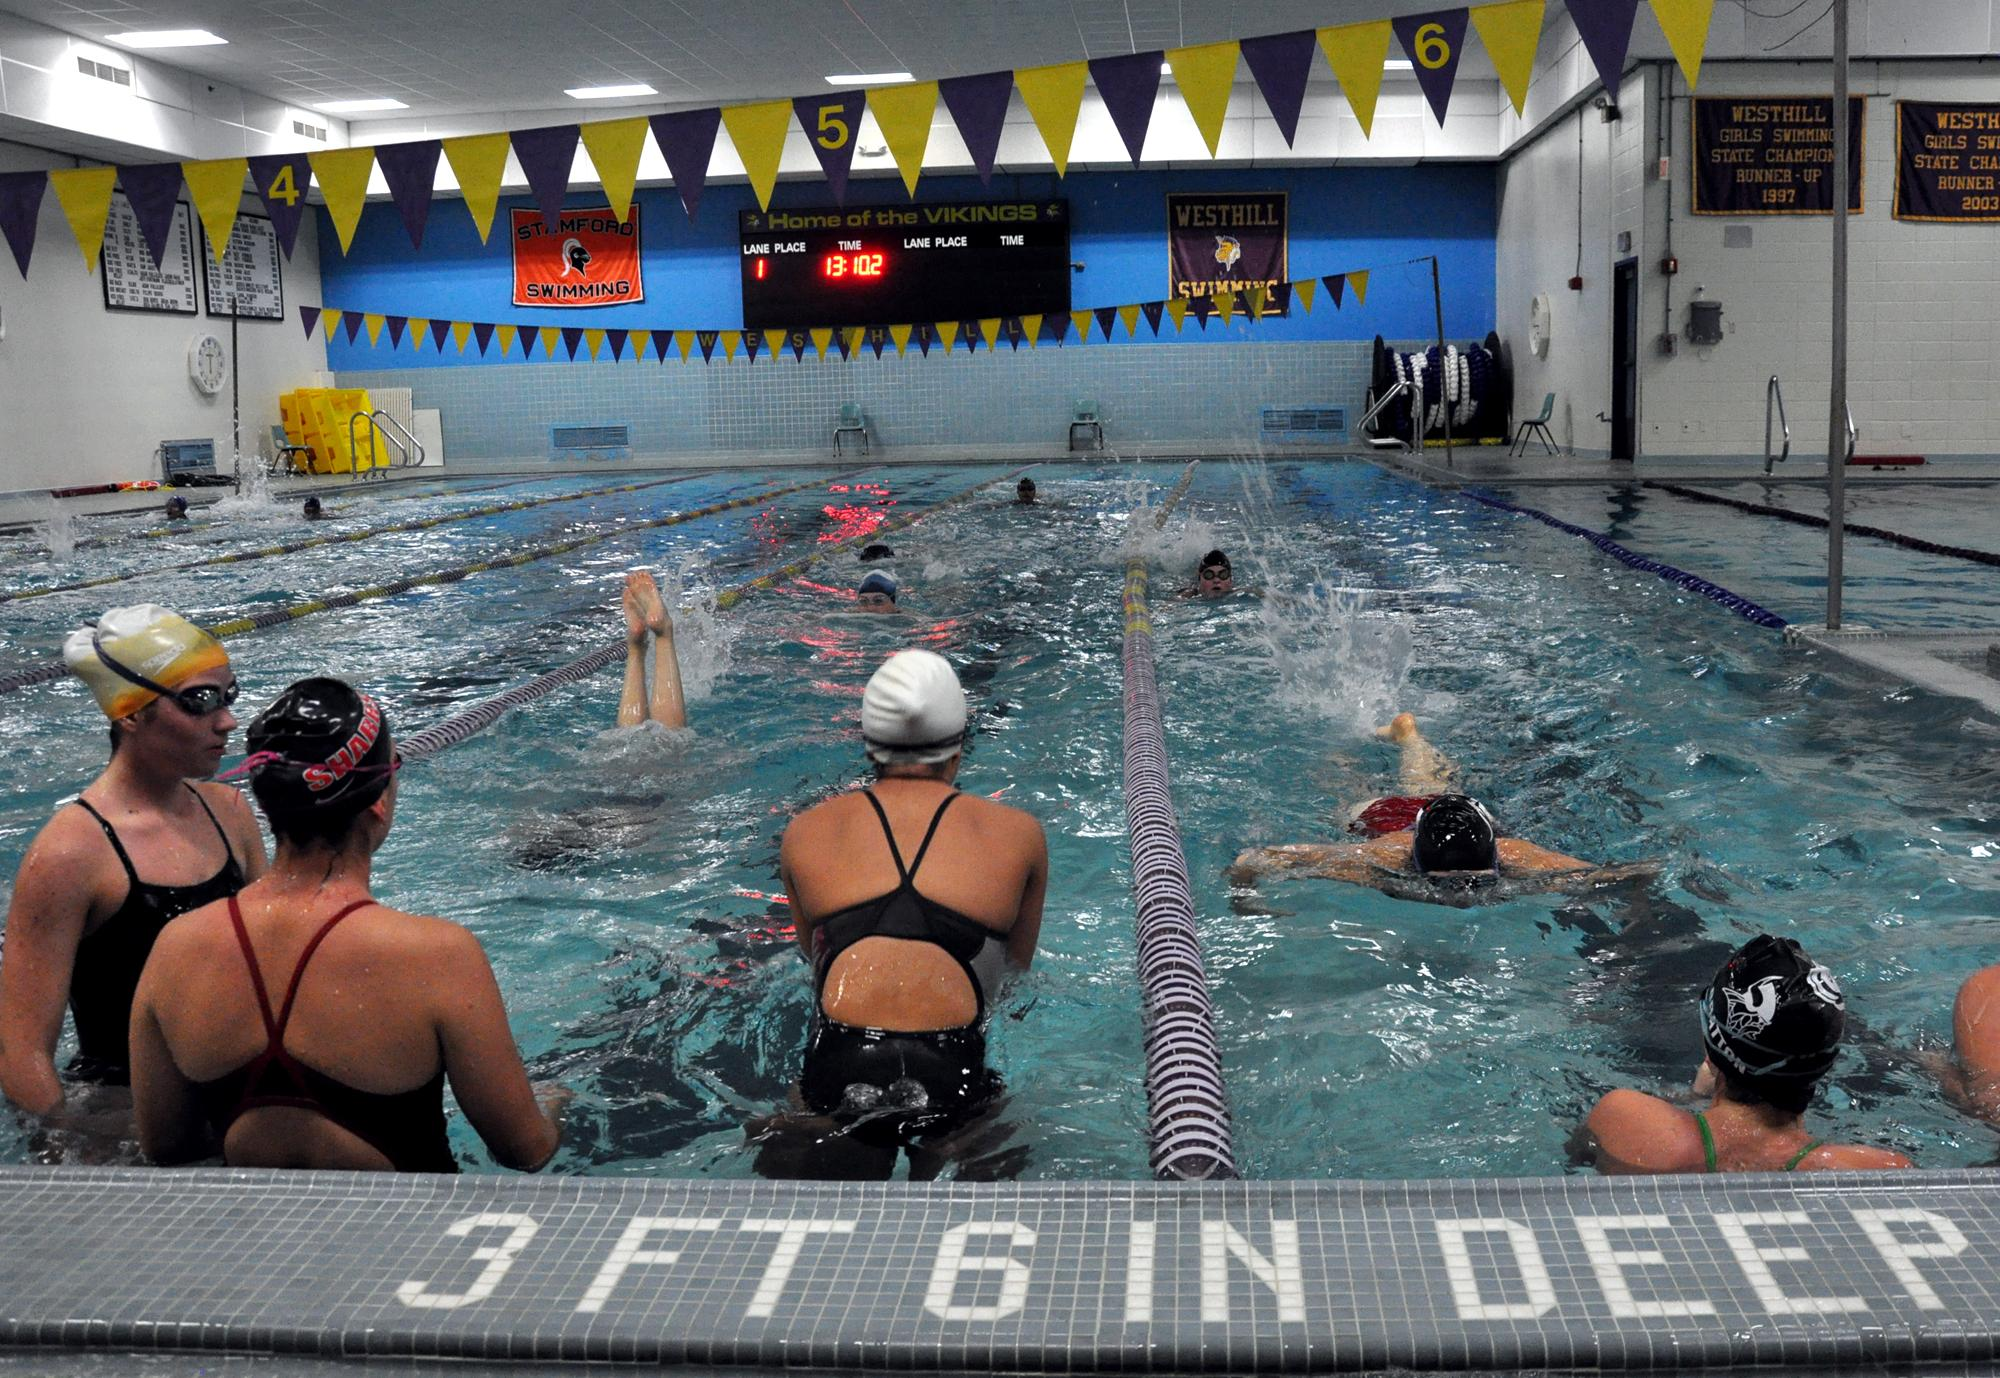 Westhill Stamford Girls Swim Team Parents At Odds Over Coach S Suspension Newstimes